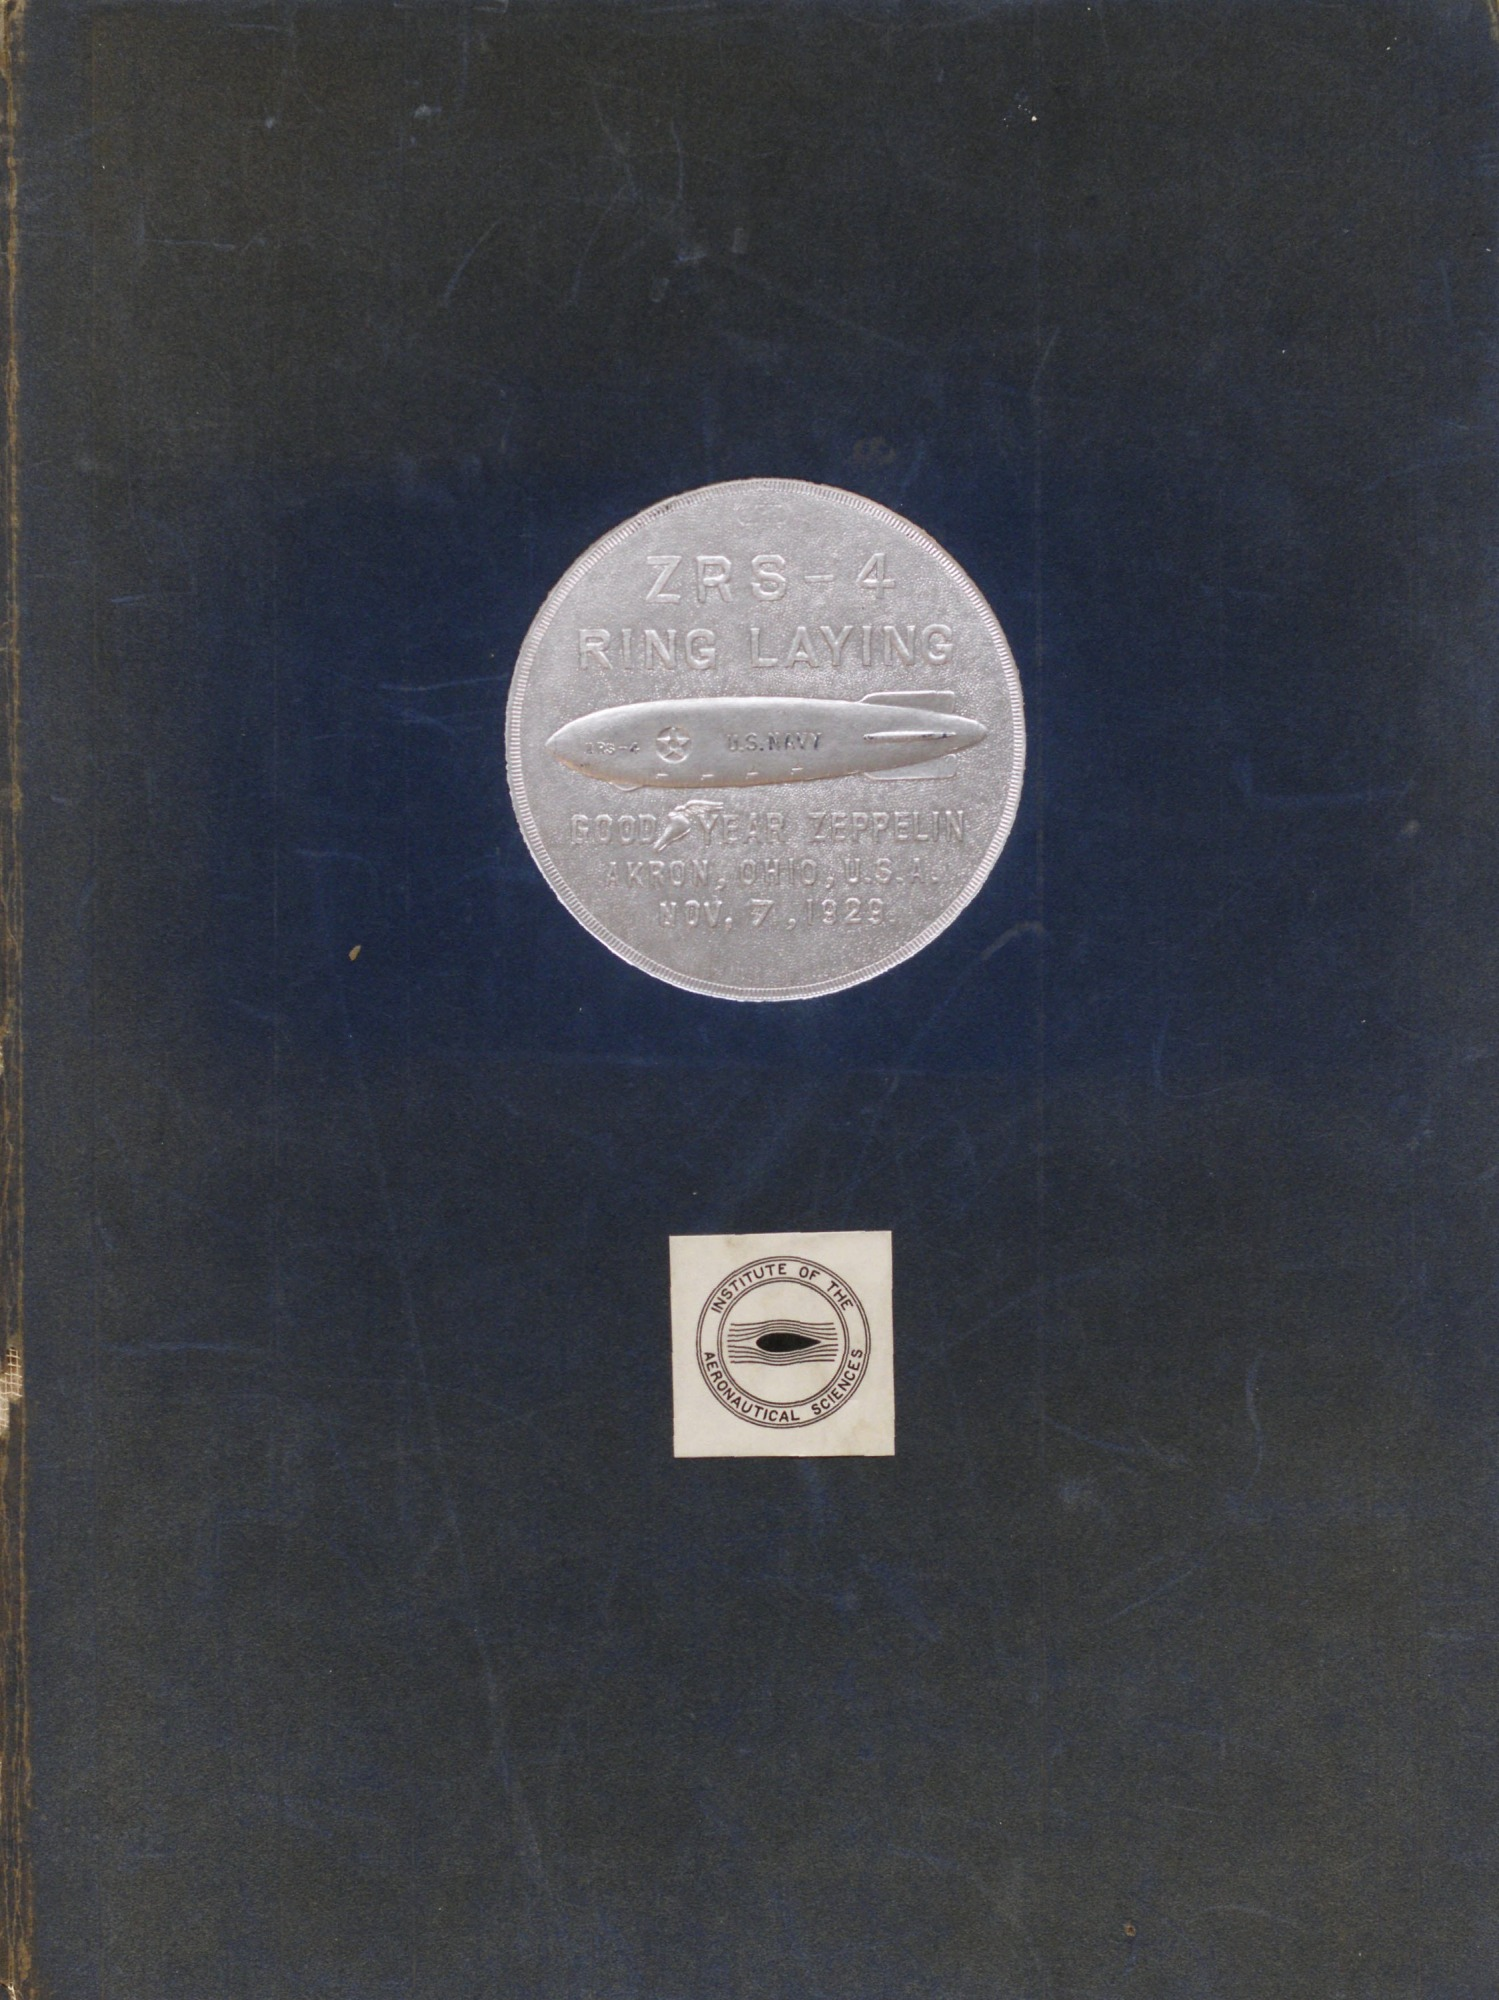 ZRS-4 Ring Laying Commemorative Book